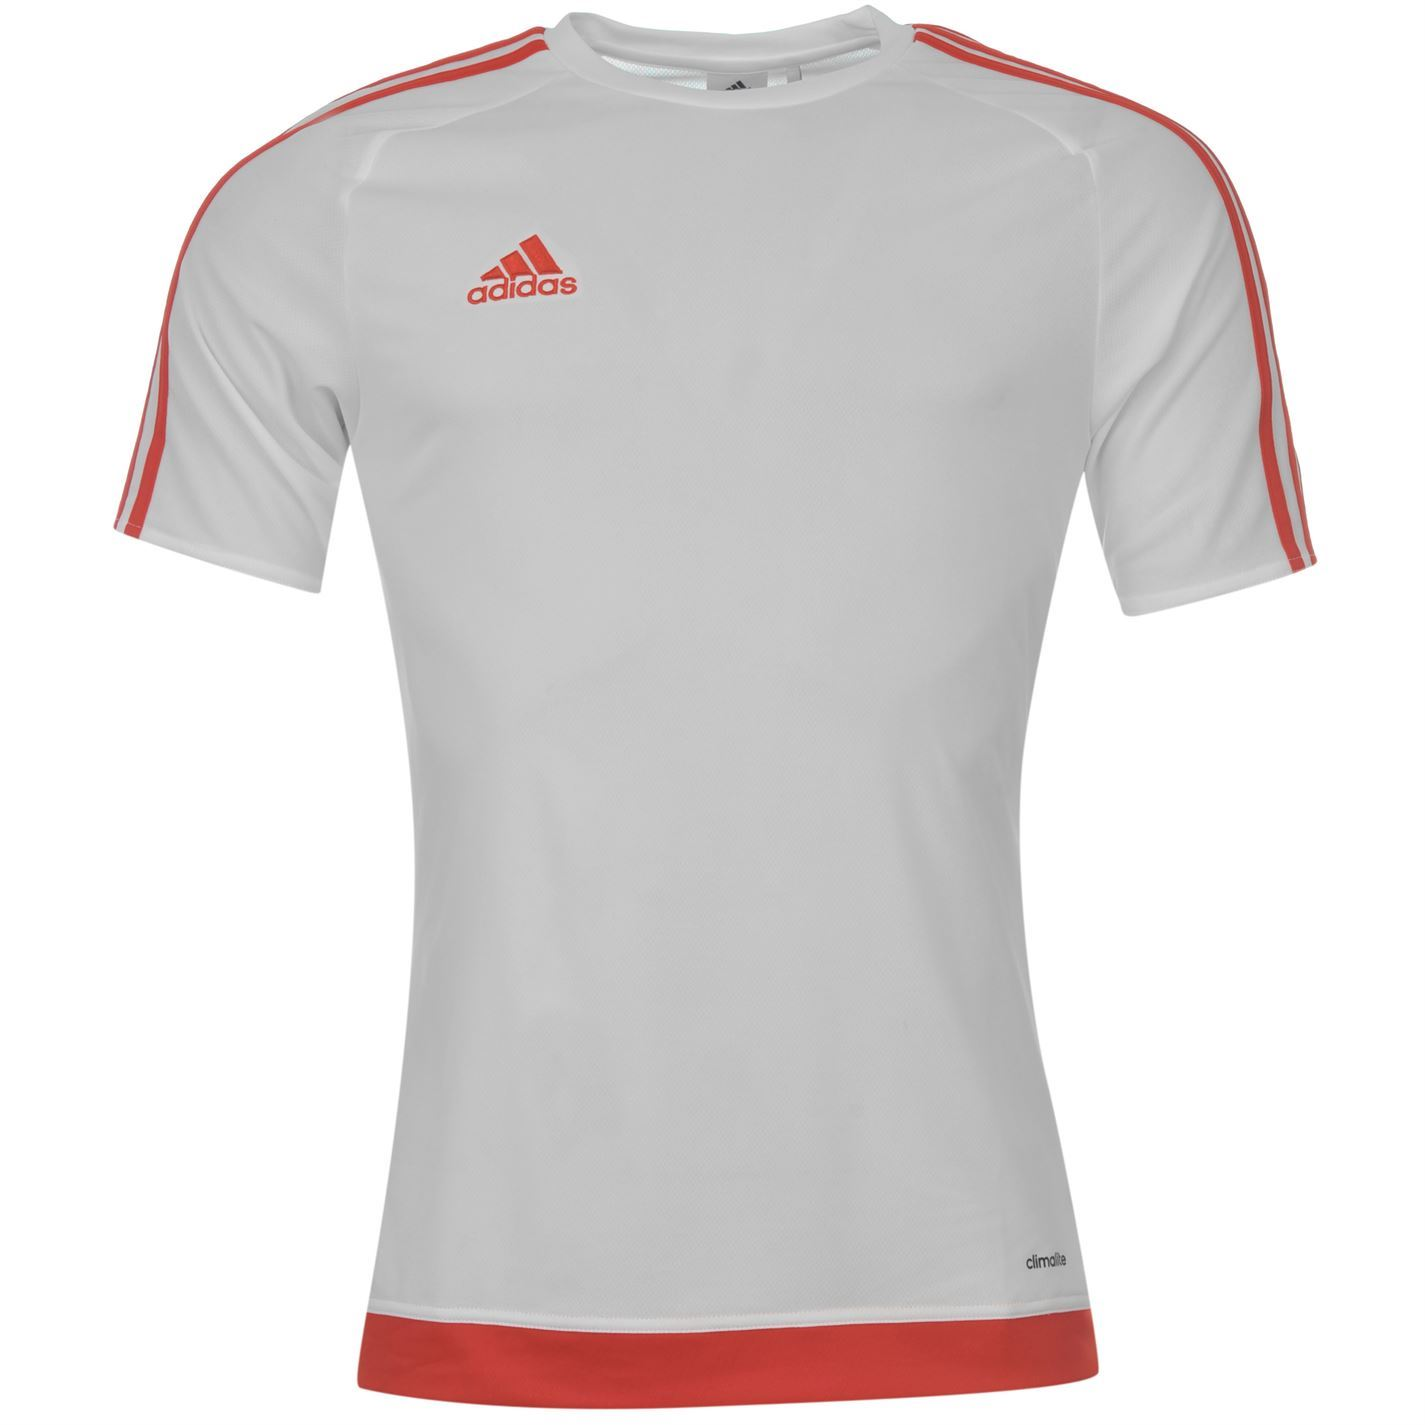 adidas 3 stripe estro climalite t shirt mens white red. Black Bedroom Furniture Sets. Home Design Ideas